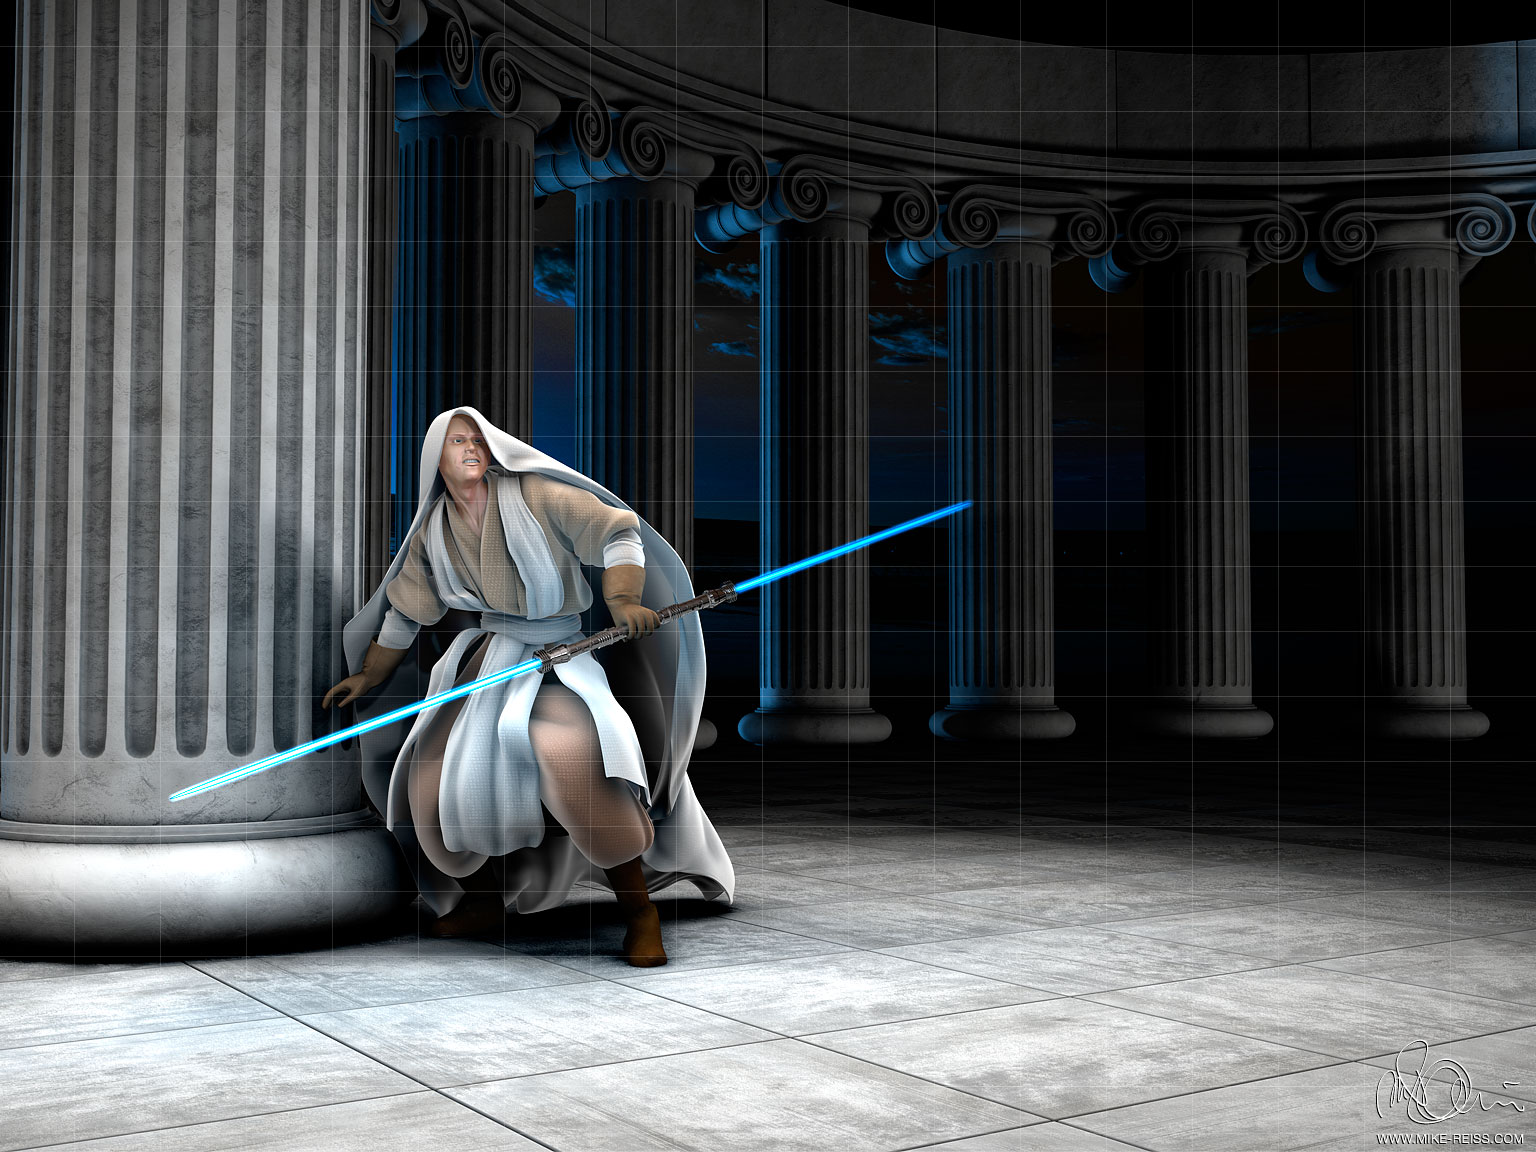 Jedi Ritter / Jedi Knight from STARWARS in 3D